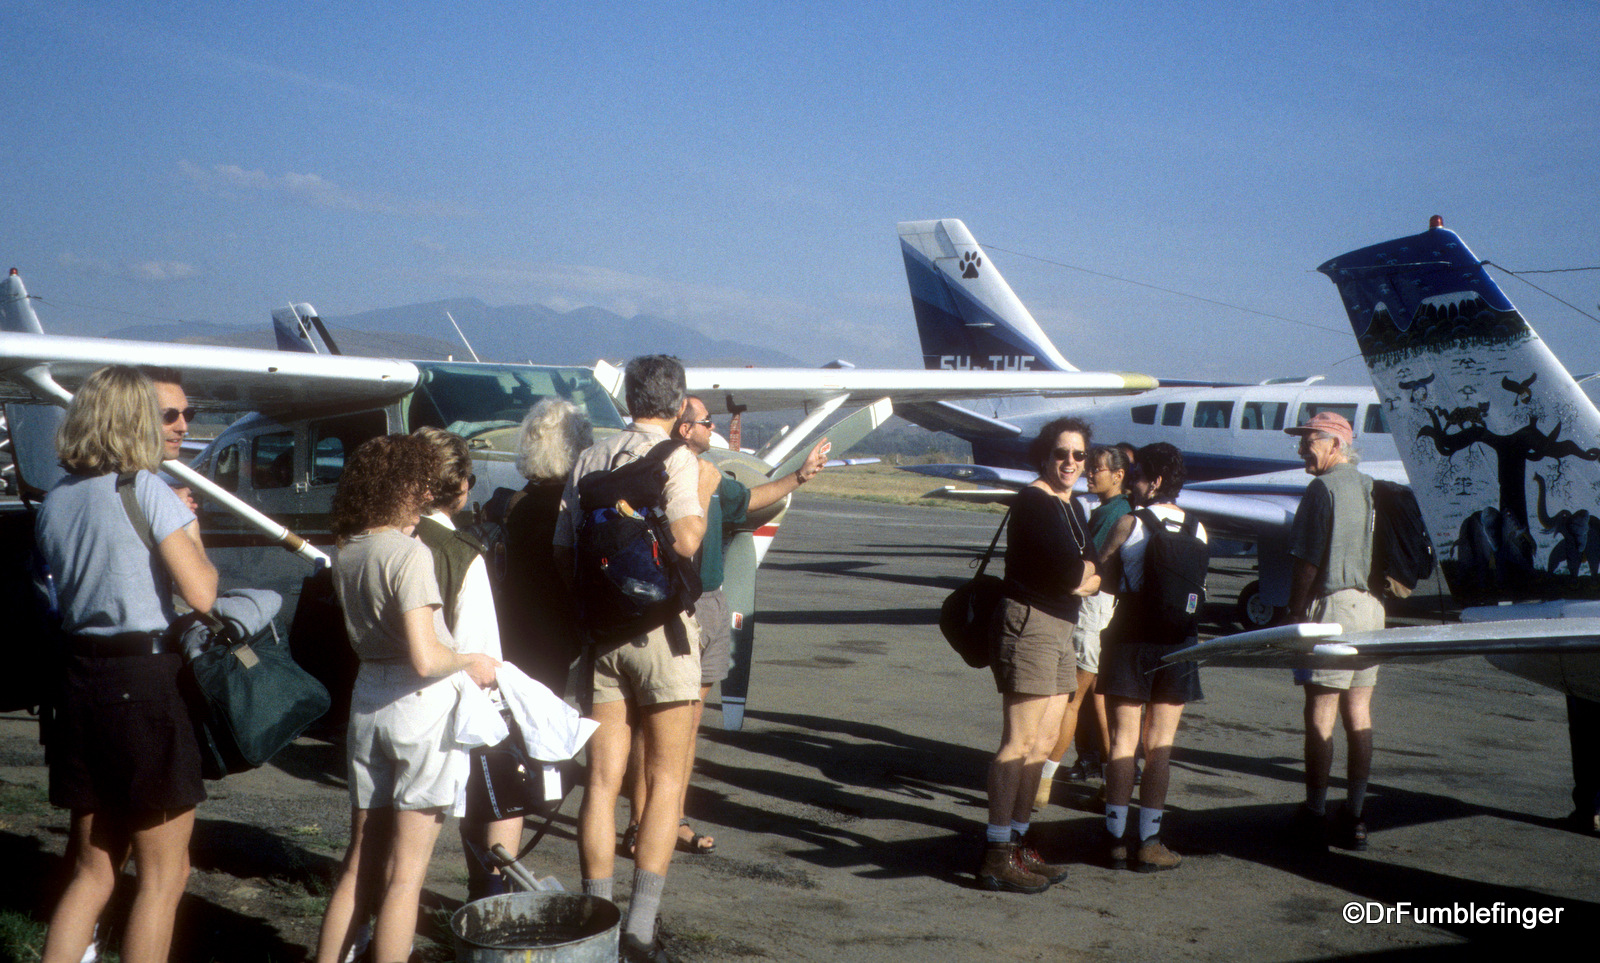 Getting ready to depart Arusha for Serengeti National Park